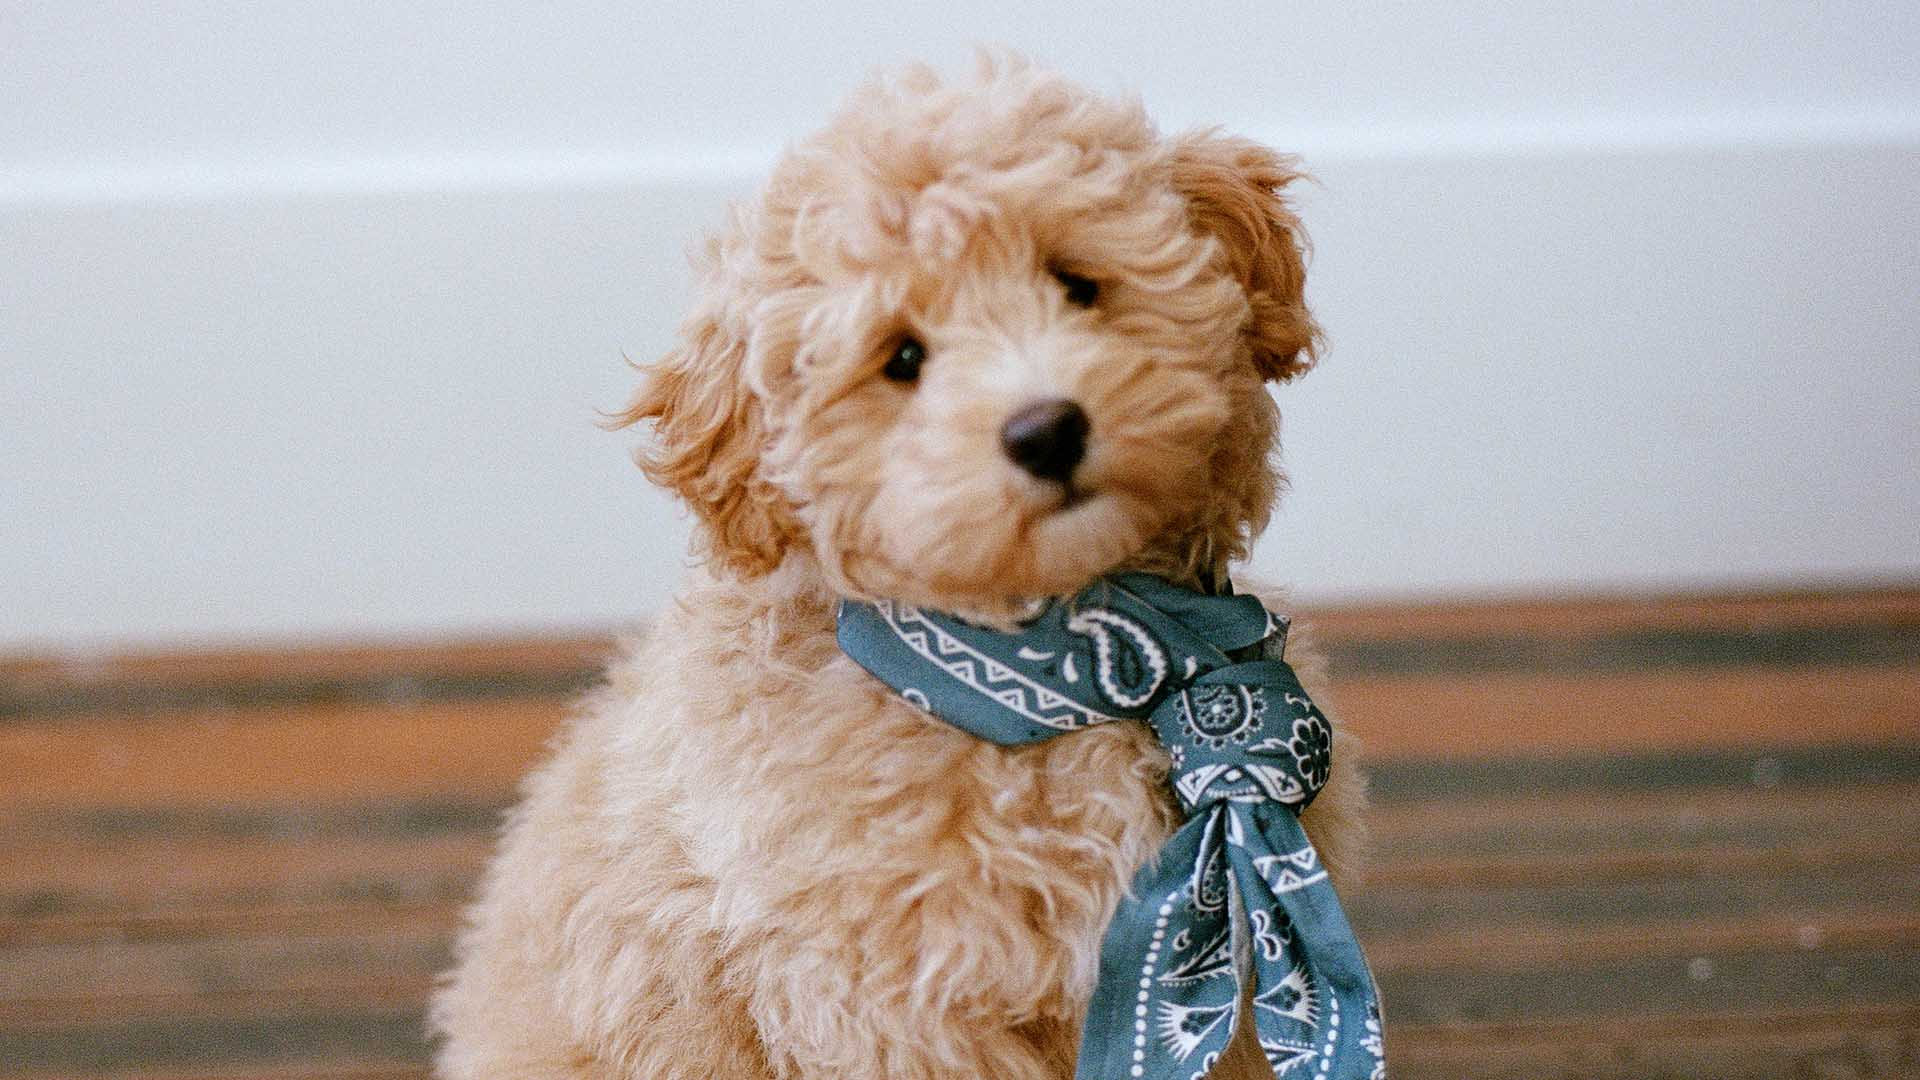 The Upside Has Released a 'Pupside' Bandana for Dogs and It's Donating the Proceeds to RSPCA NSW